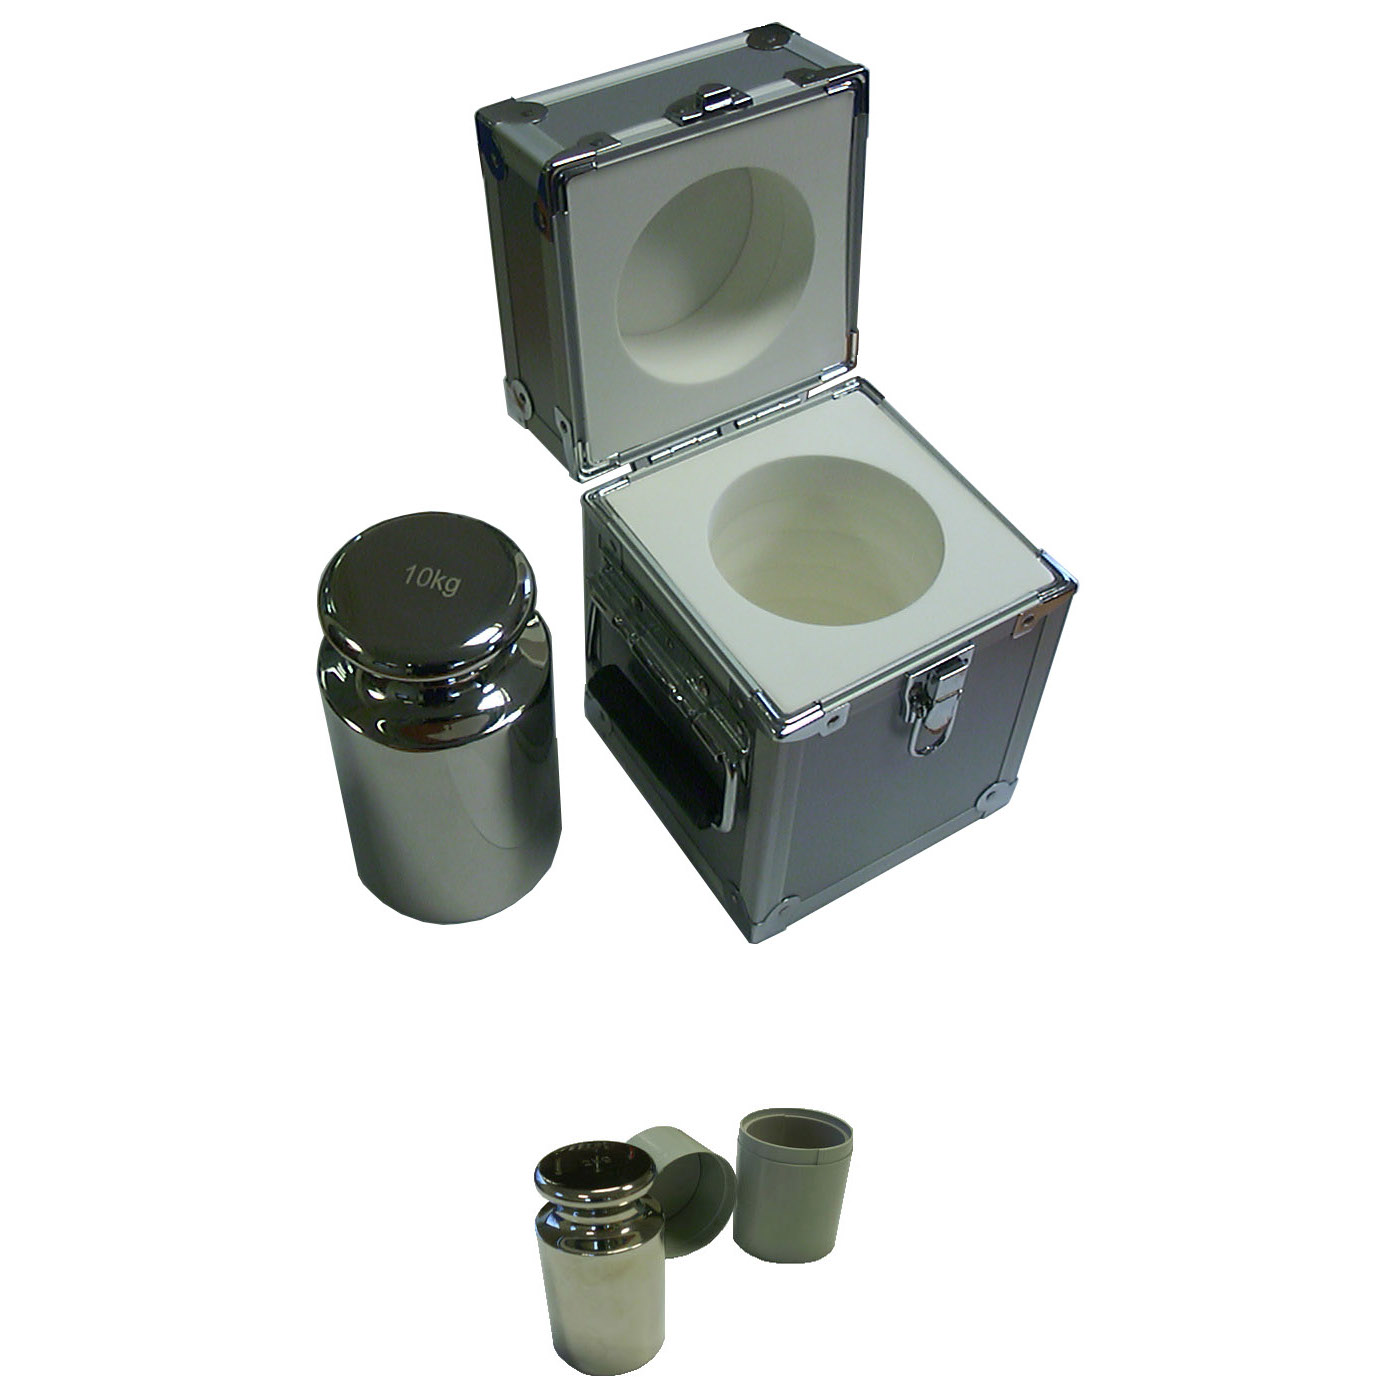 POLISHED STAINLESS STEEL CALIBRATION WEIGHTS with CONTAINERS | countyscales.co.uk